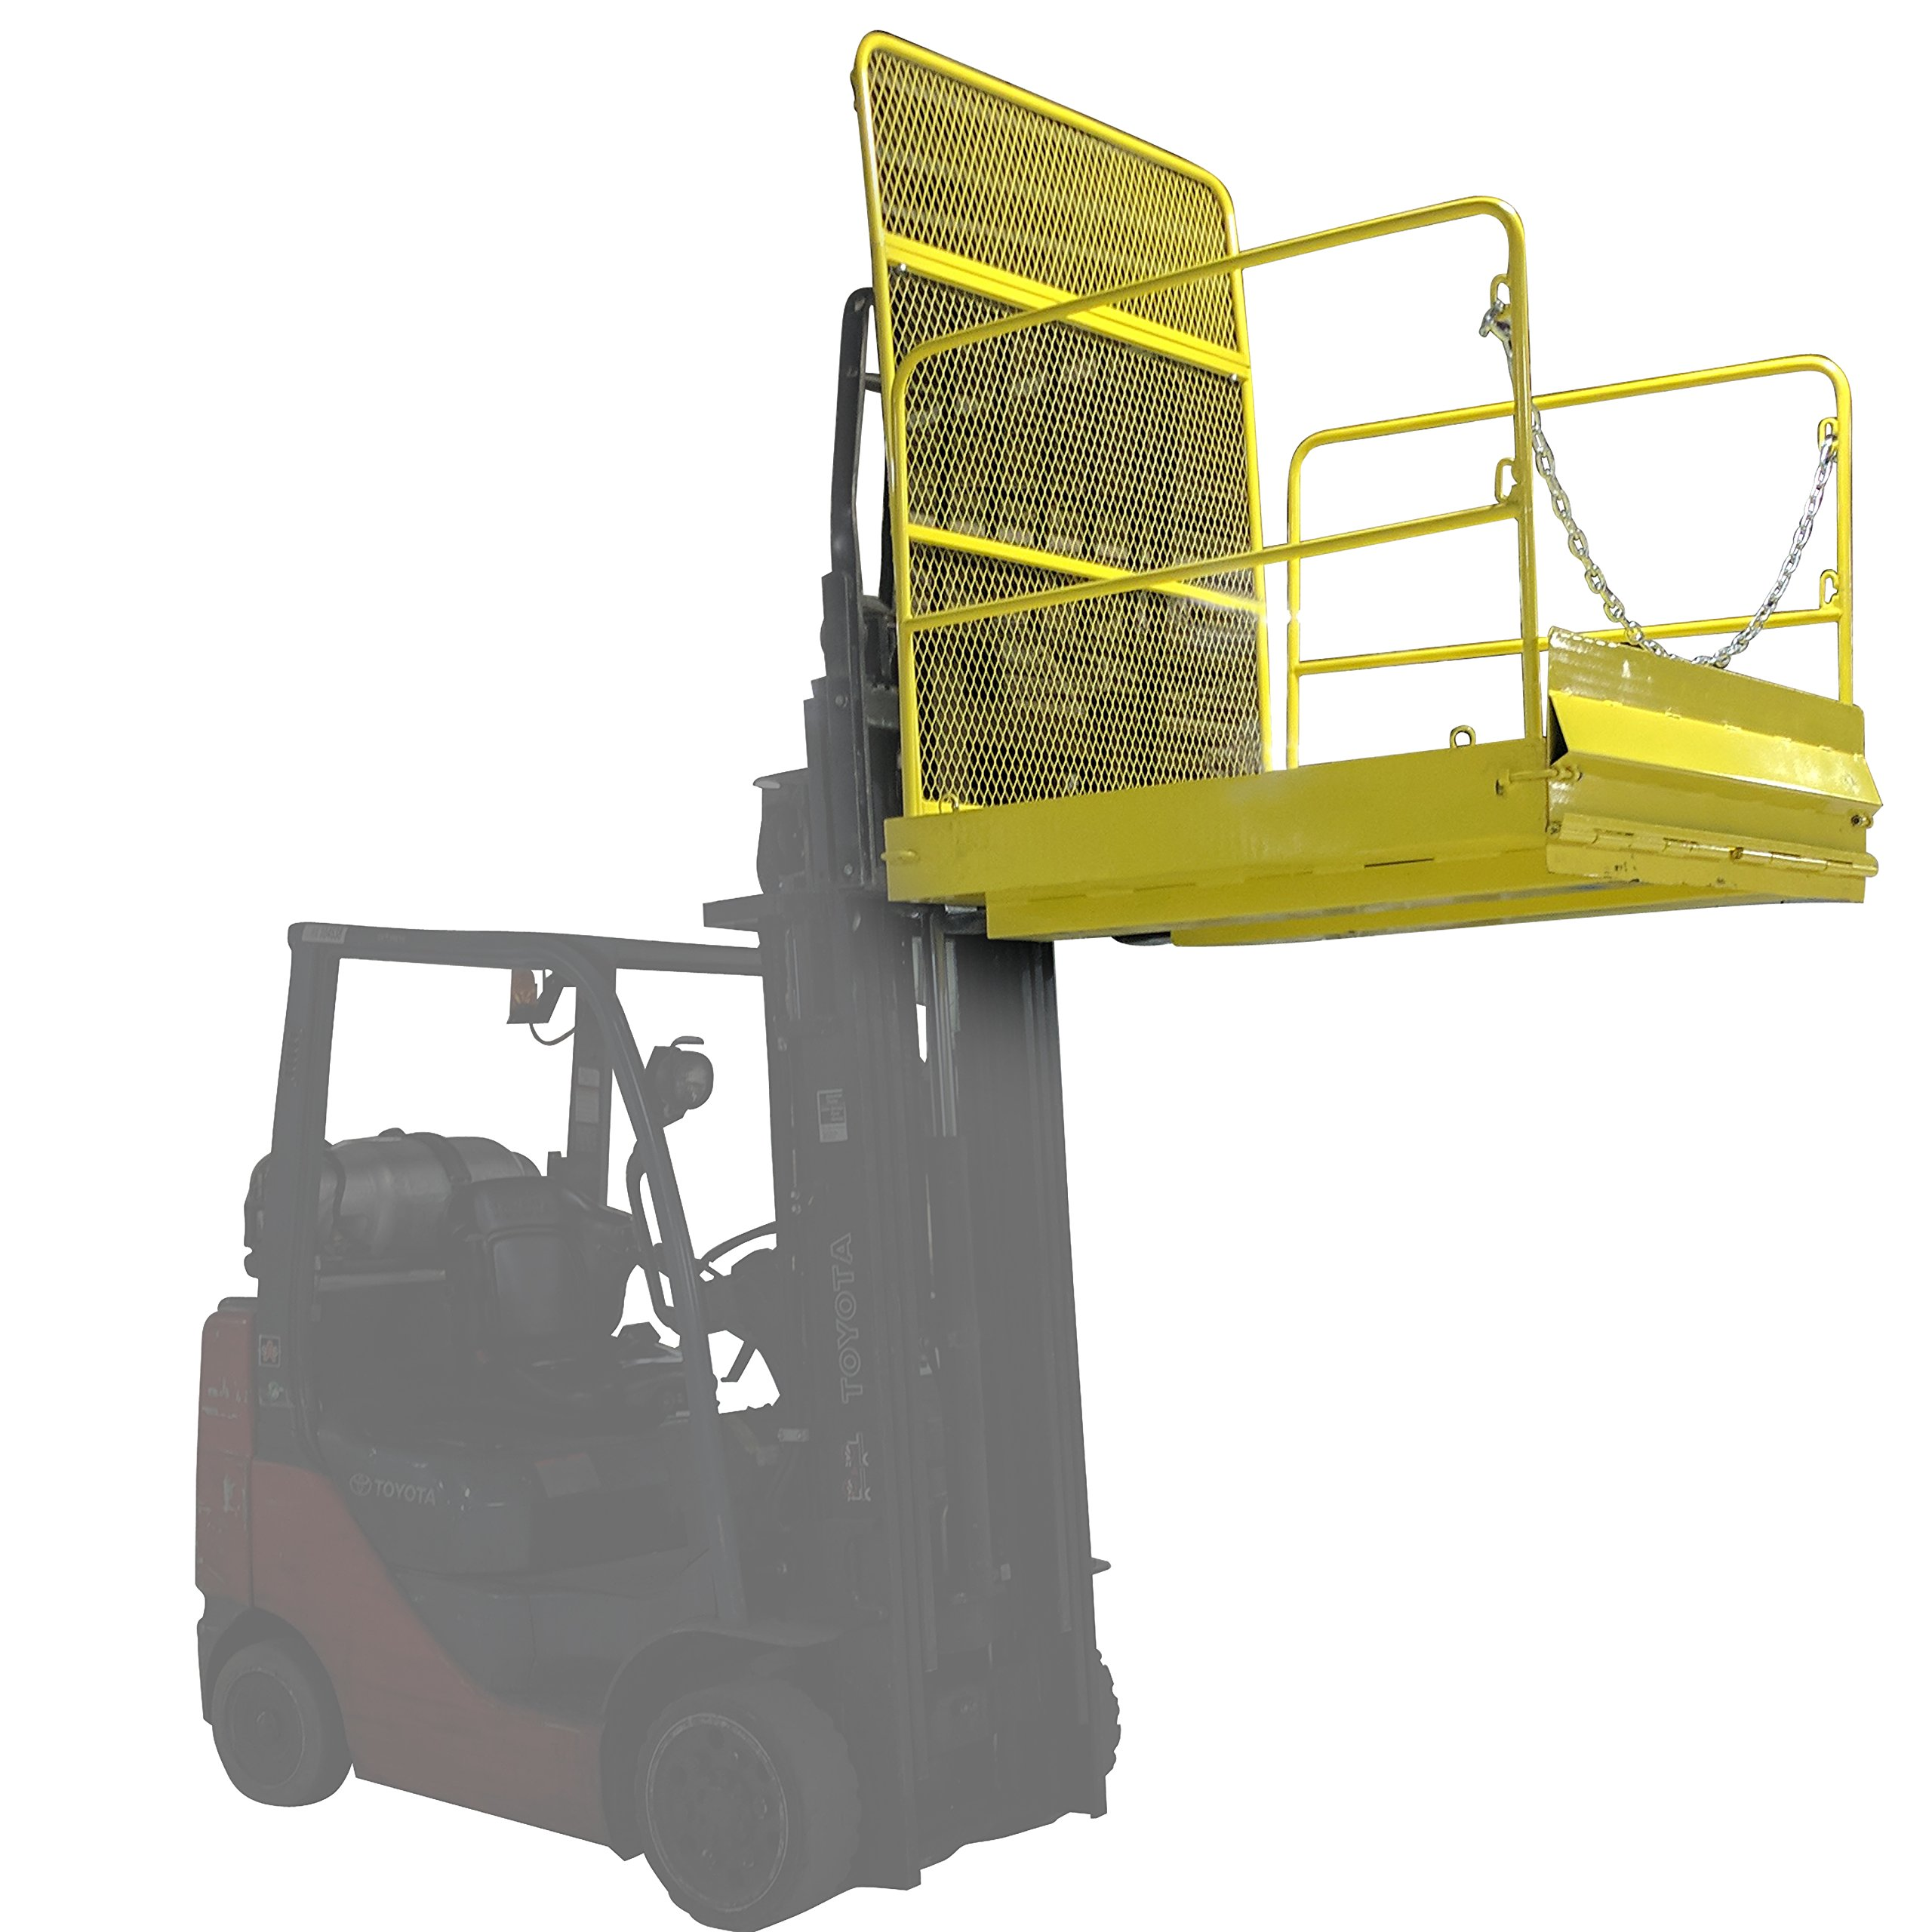 54'' x 54'' Loading Work Platform w/ Handrails - 2,000 LB Capacity by Titan Attachments (Image #5)